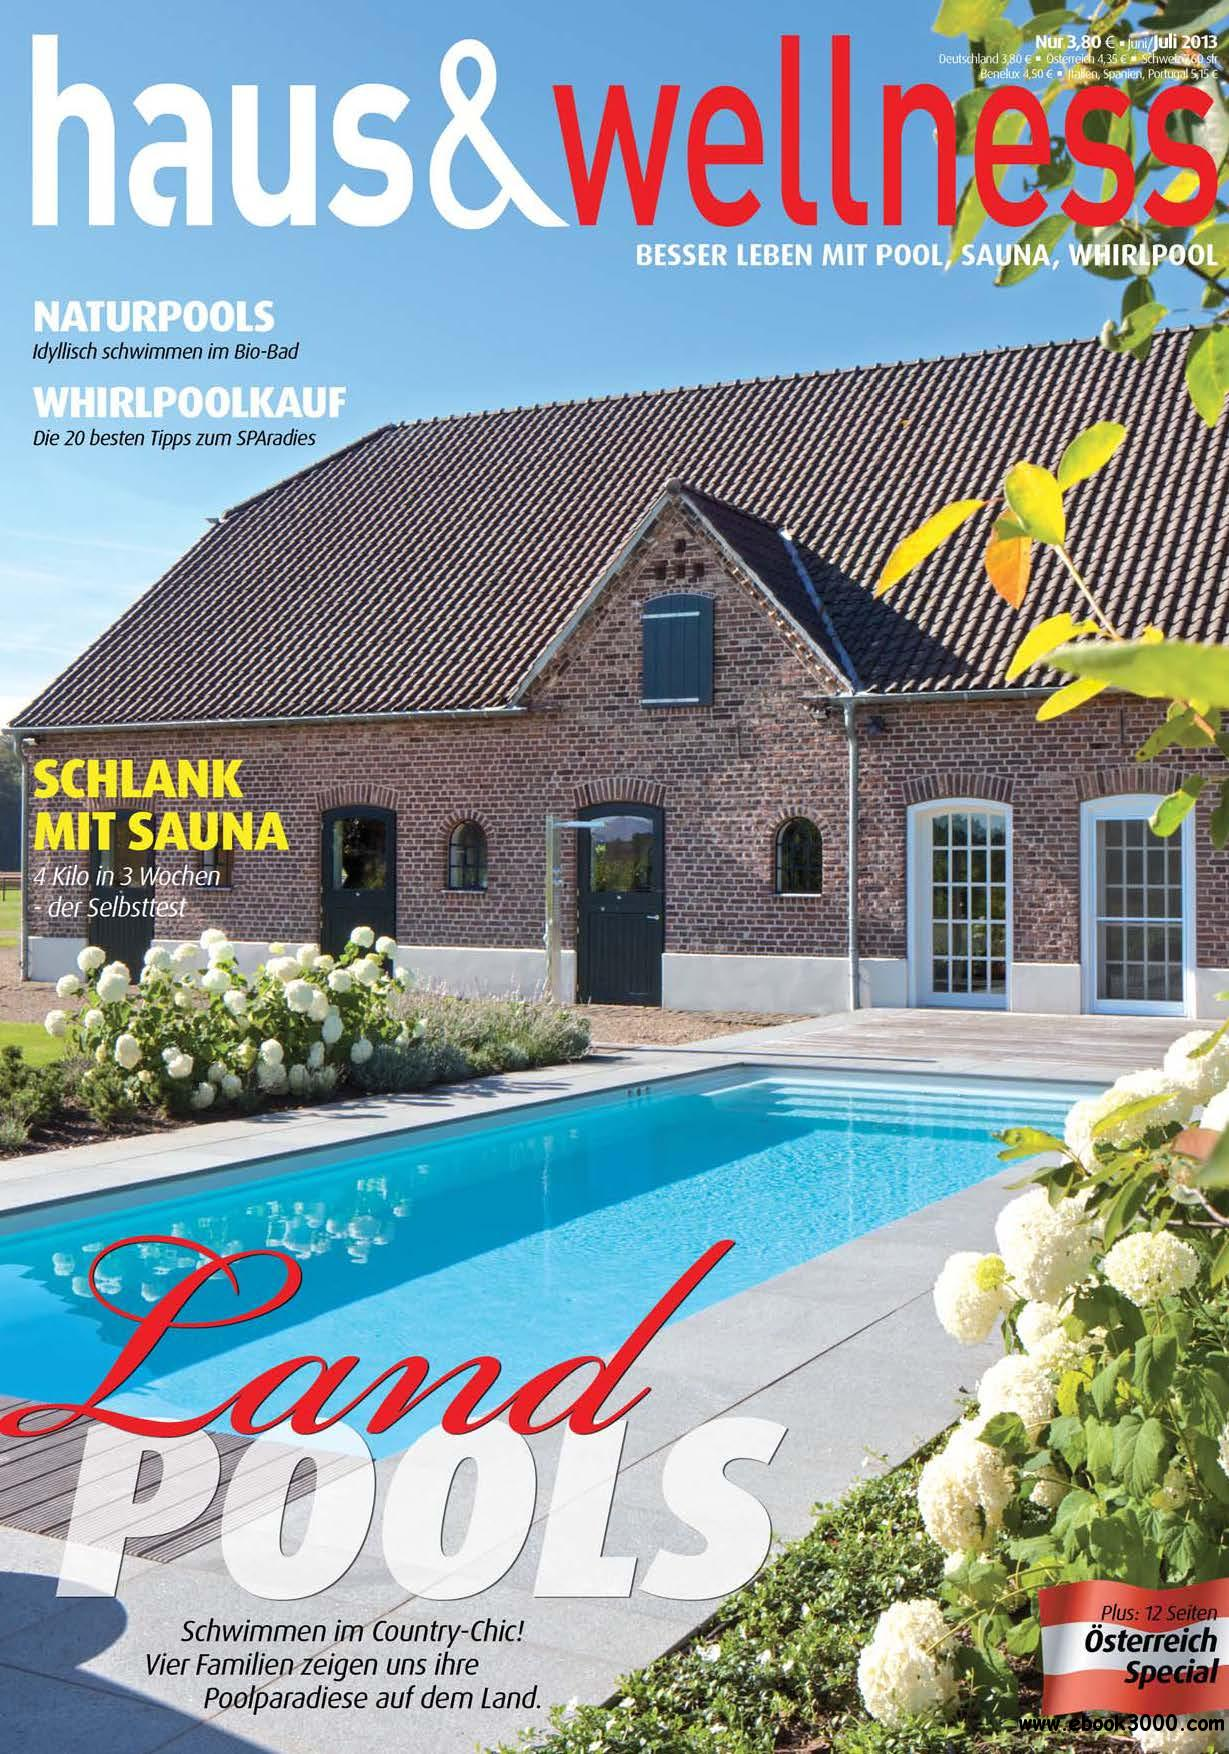 haus & wellness - Magazin fr Schwimmbad & Wellness Juni/Juli 03/2013 free download